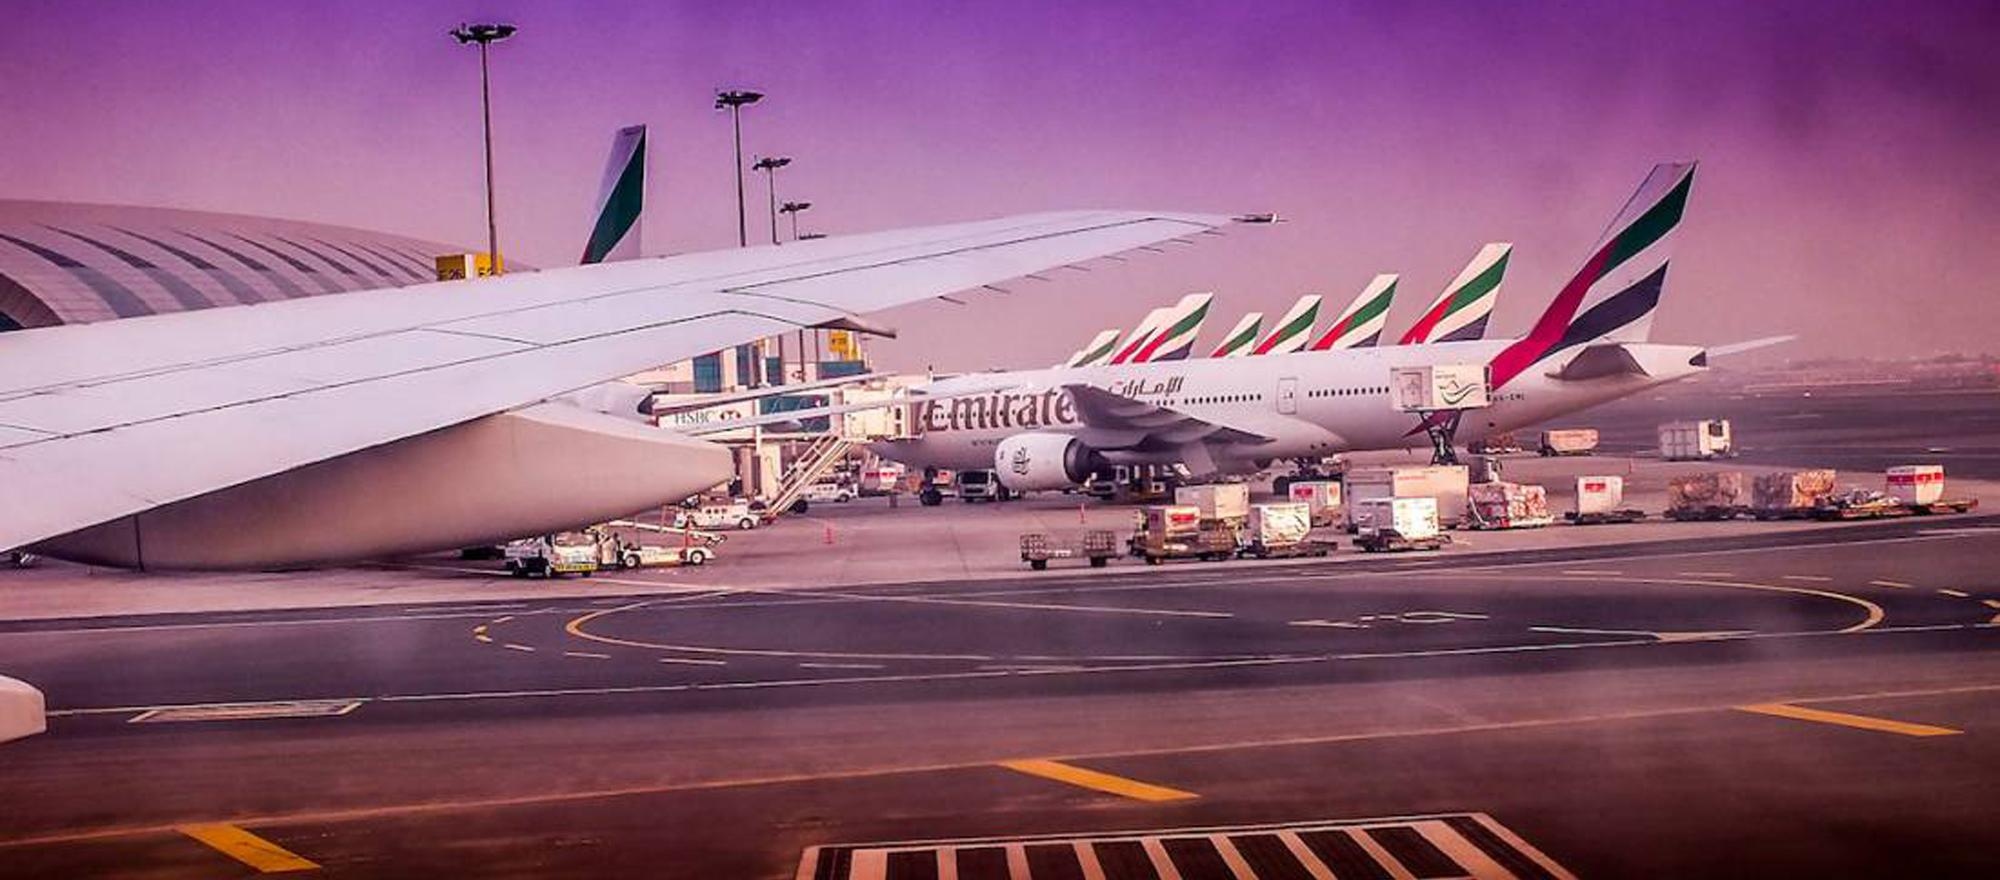 Airlines around the world, including those connecting transiting passengers at Dubai International Airport, over the weekend began boarding U.S.-bound nationals from the seven Muslim-majority countries on the now blocked Trump travel ban.